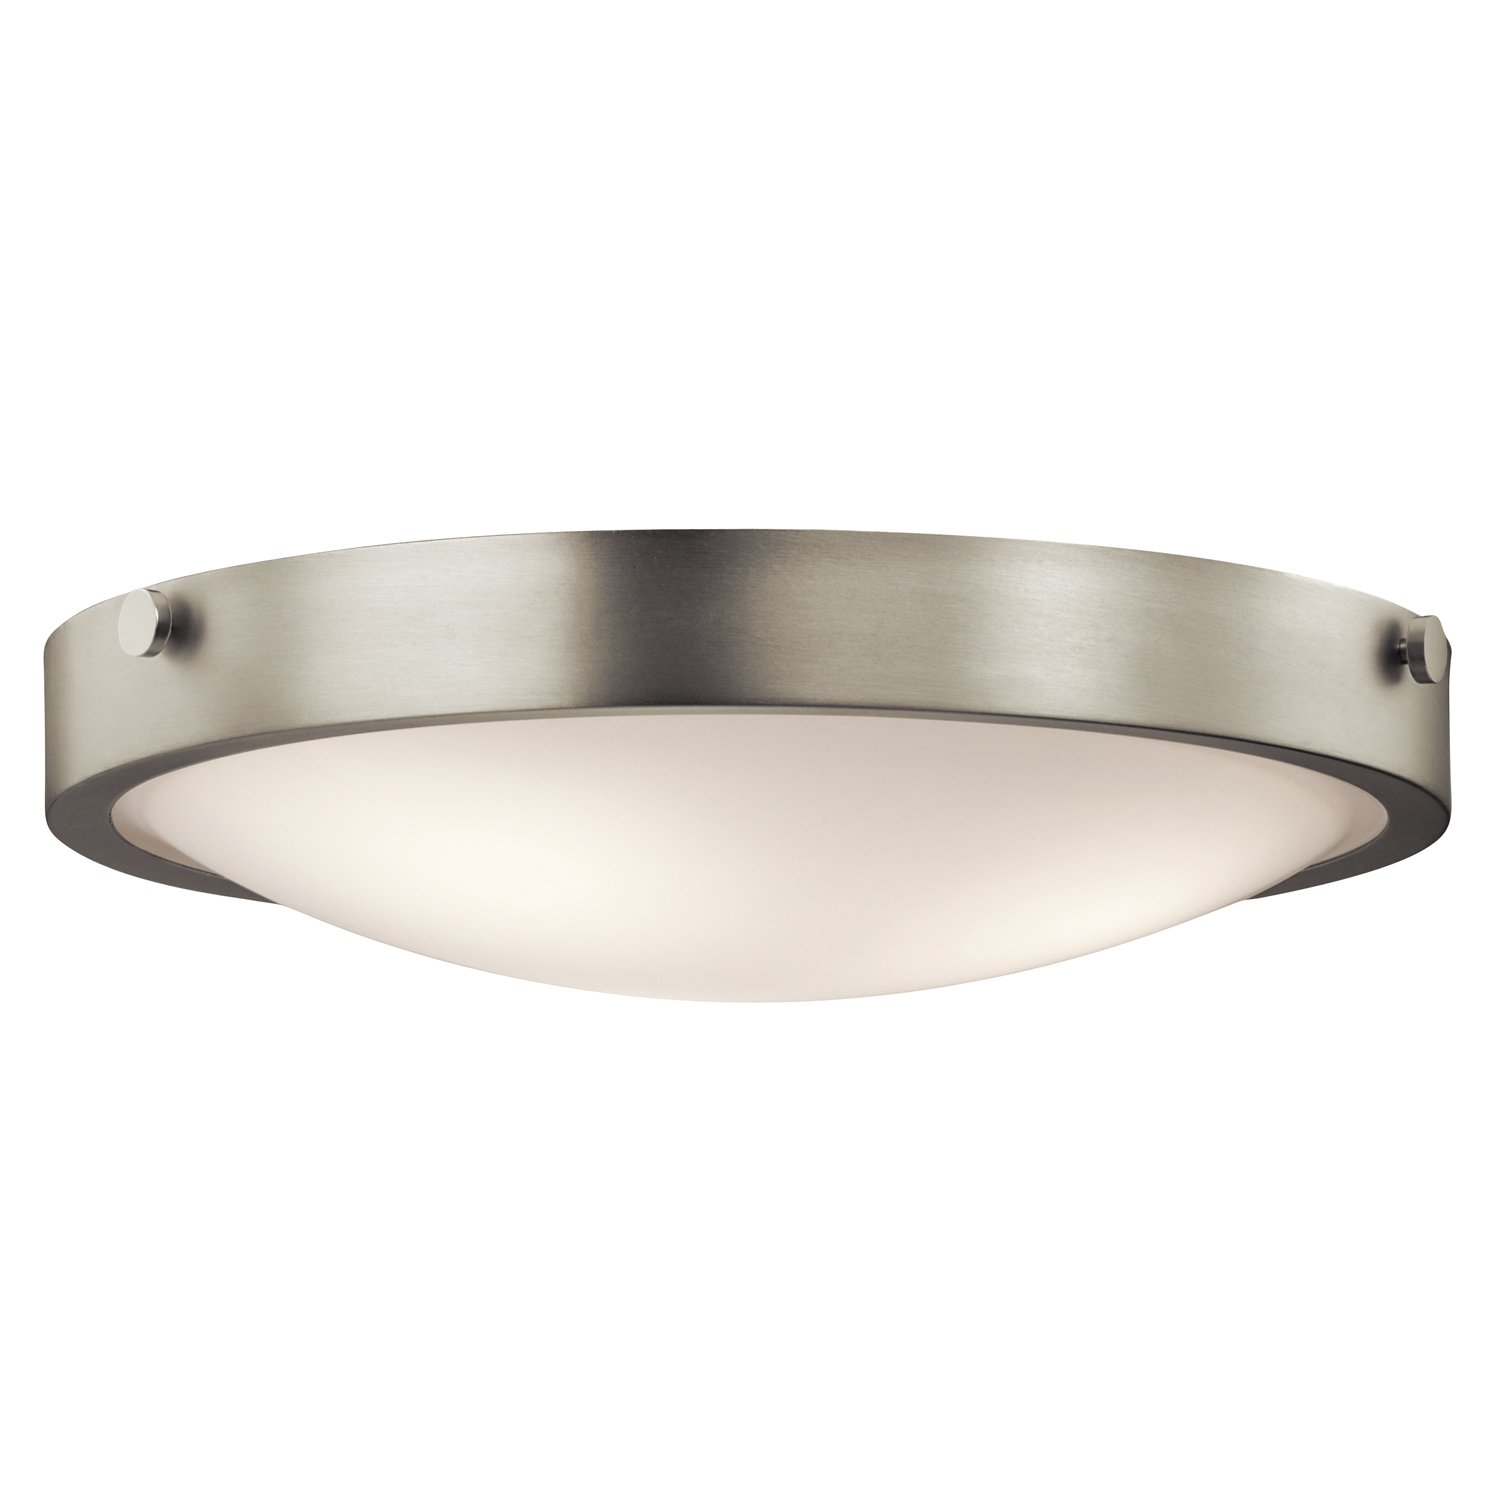 Kichler NI Three Light Flush Mount Close To Ceiling Light